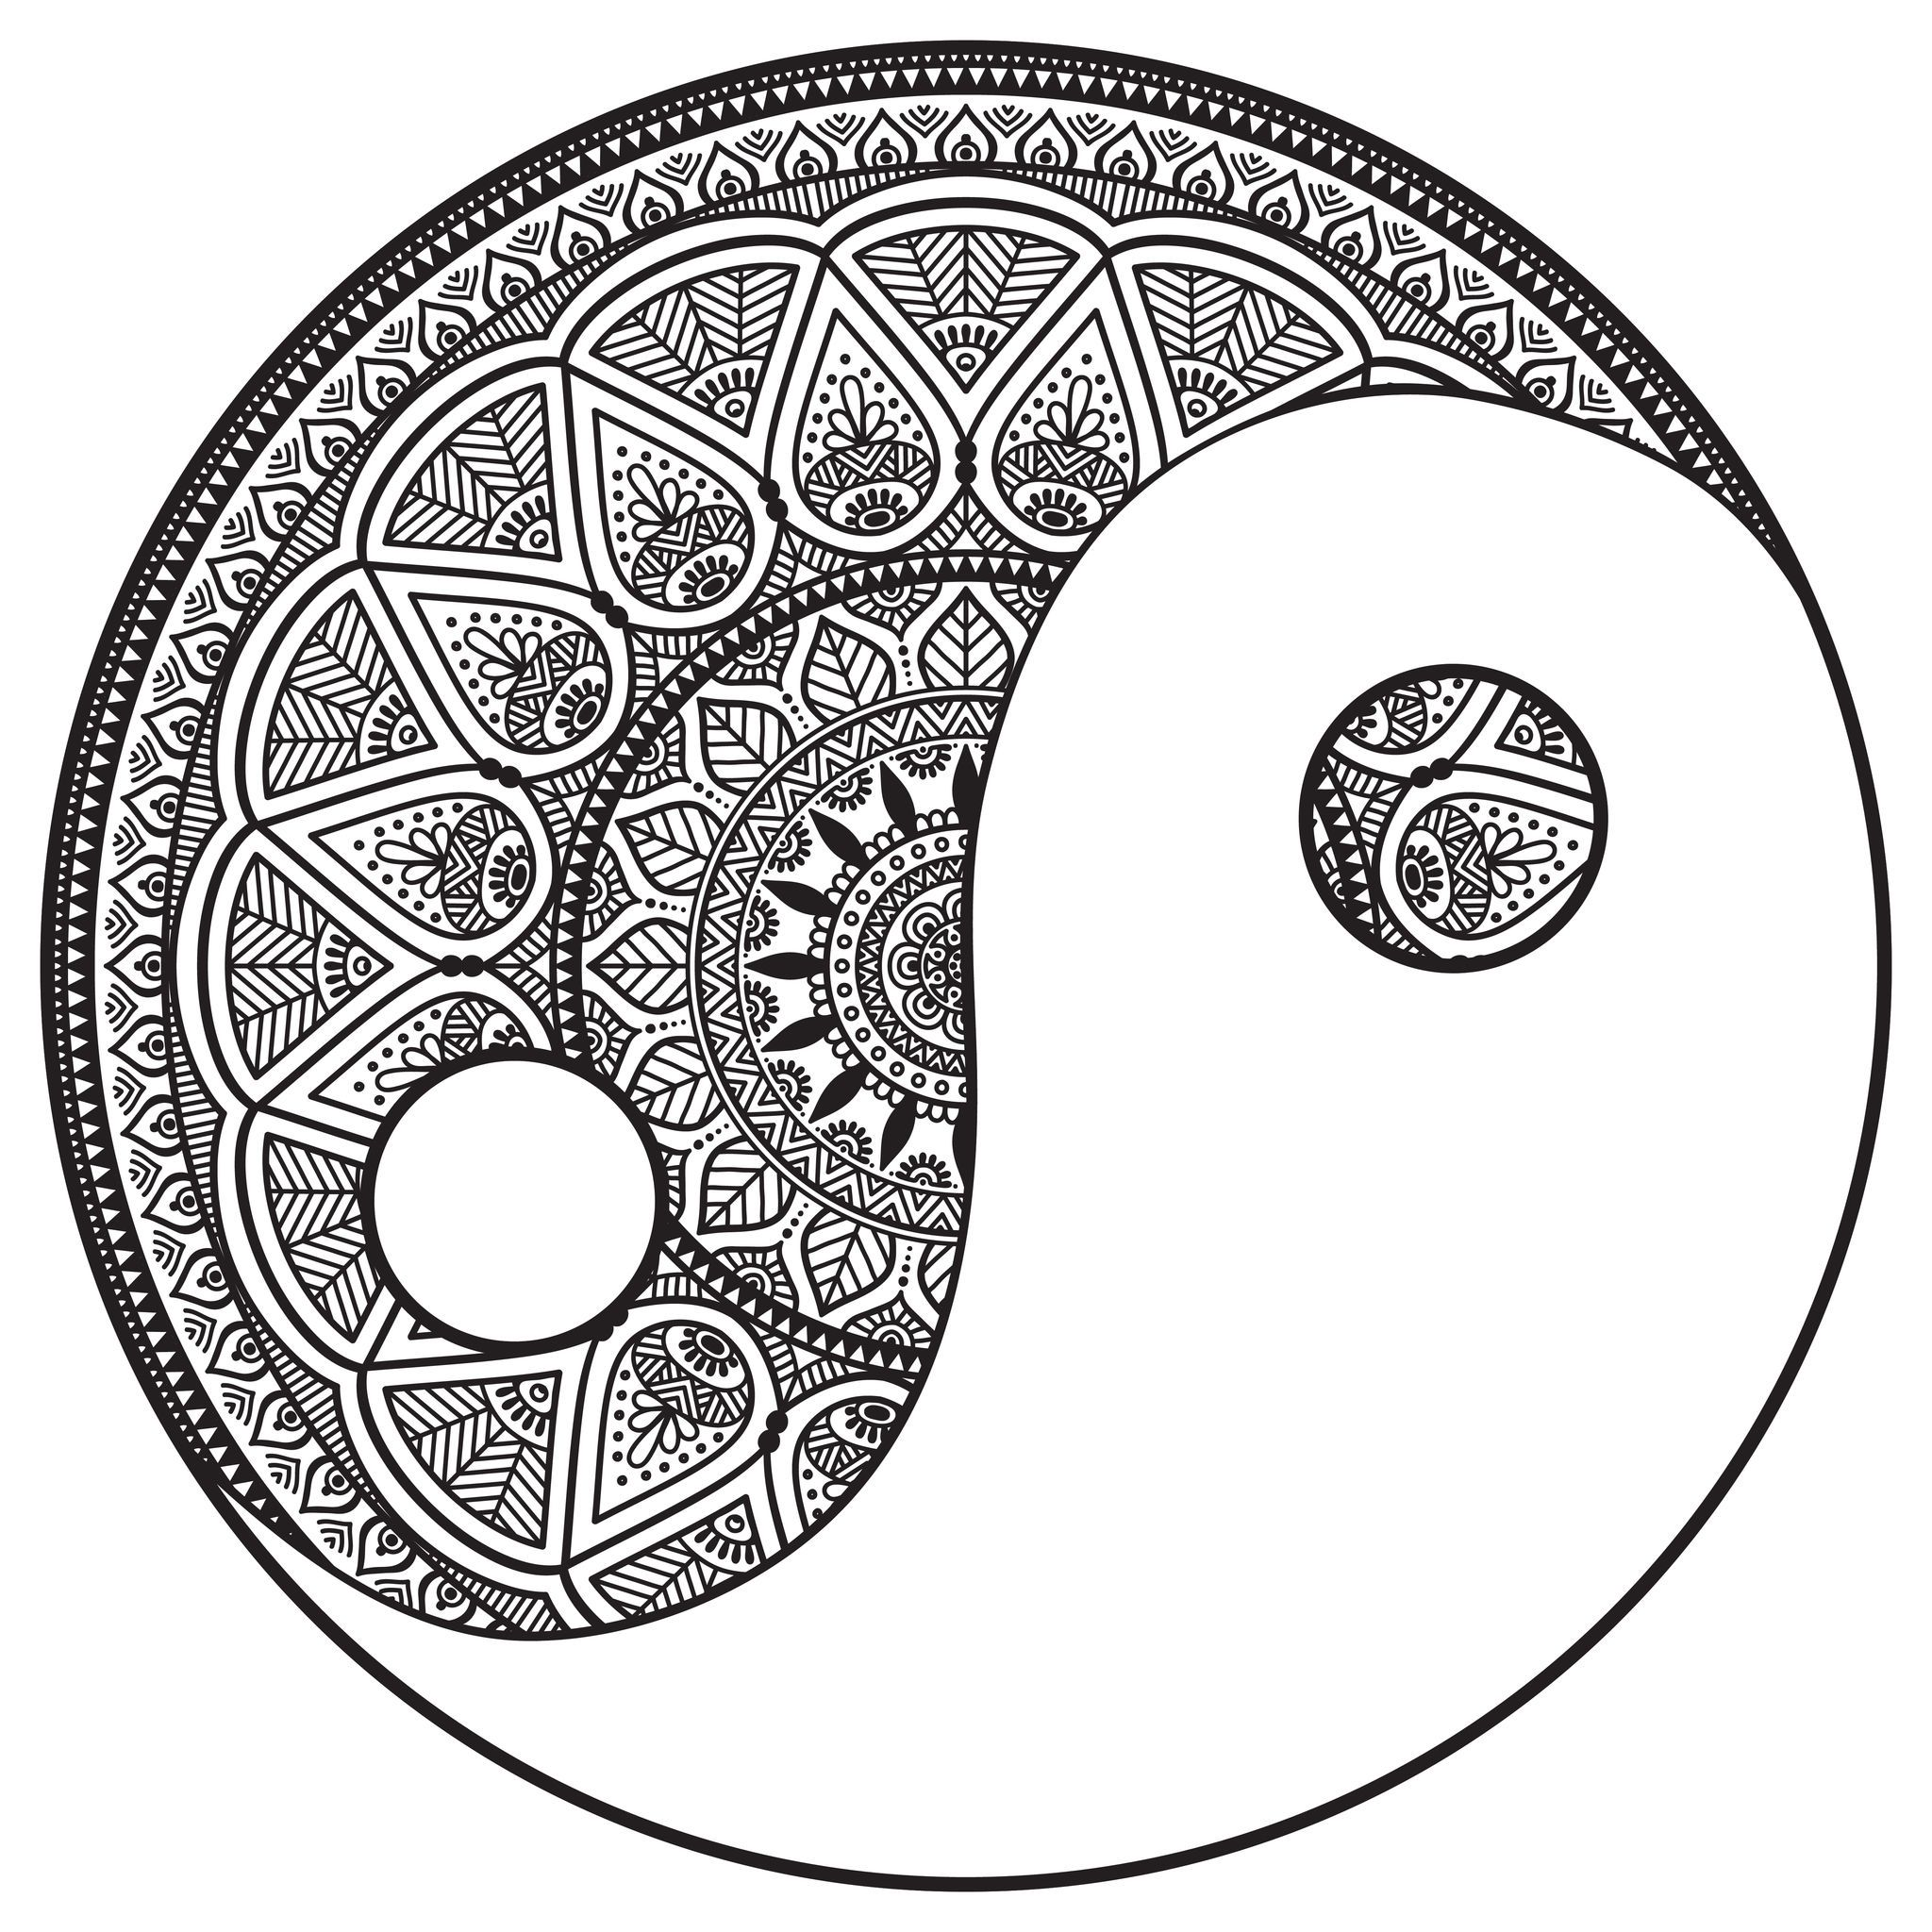 coloring-page-mandala-Yin-and-Yang-to-color-by-Snezh, From the ...